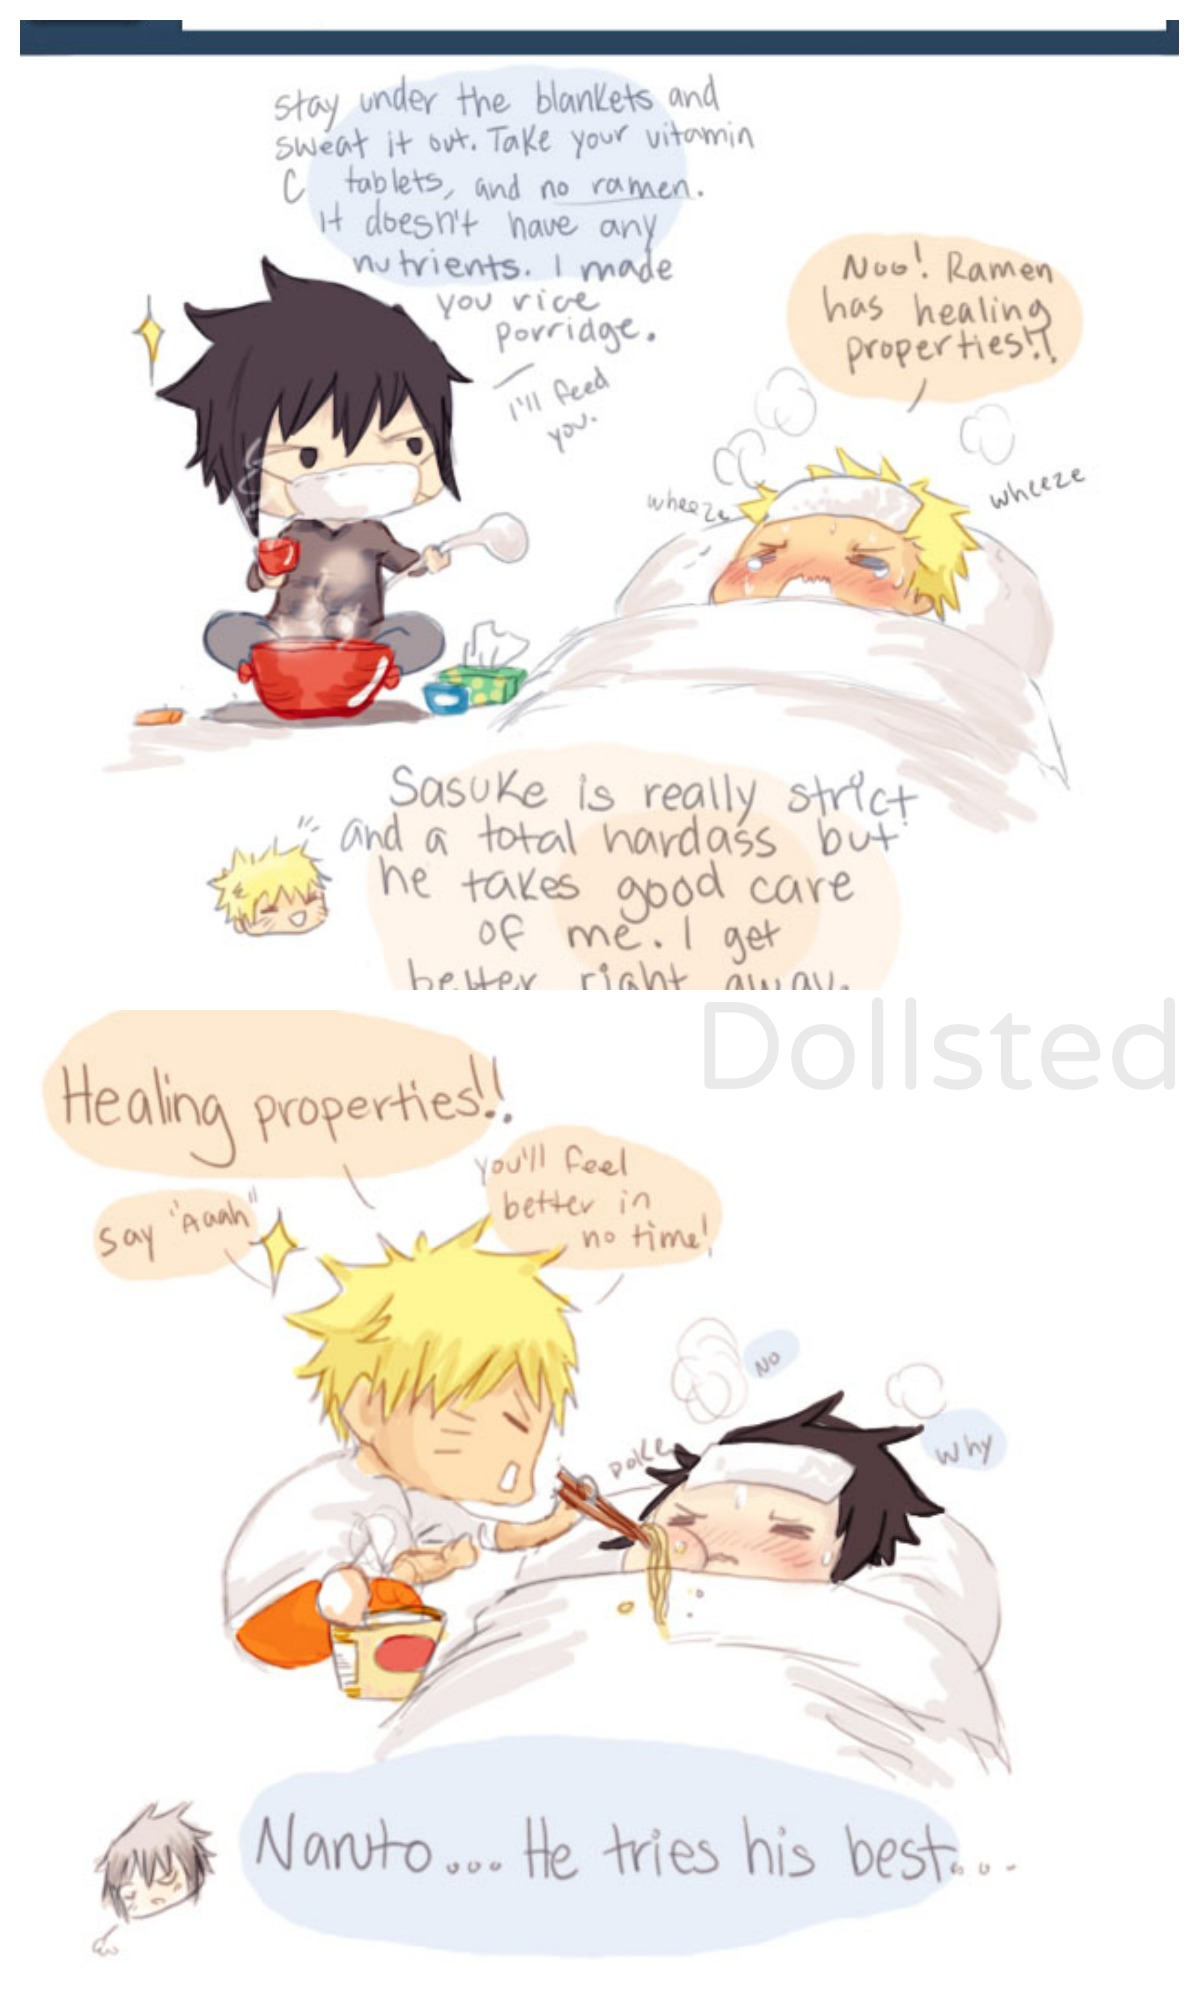 How do you and Naruto take care of eachother if you're sick.